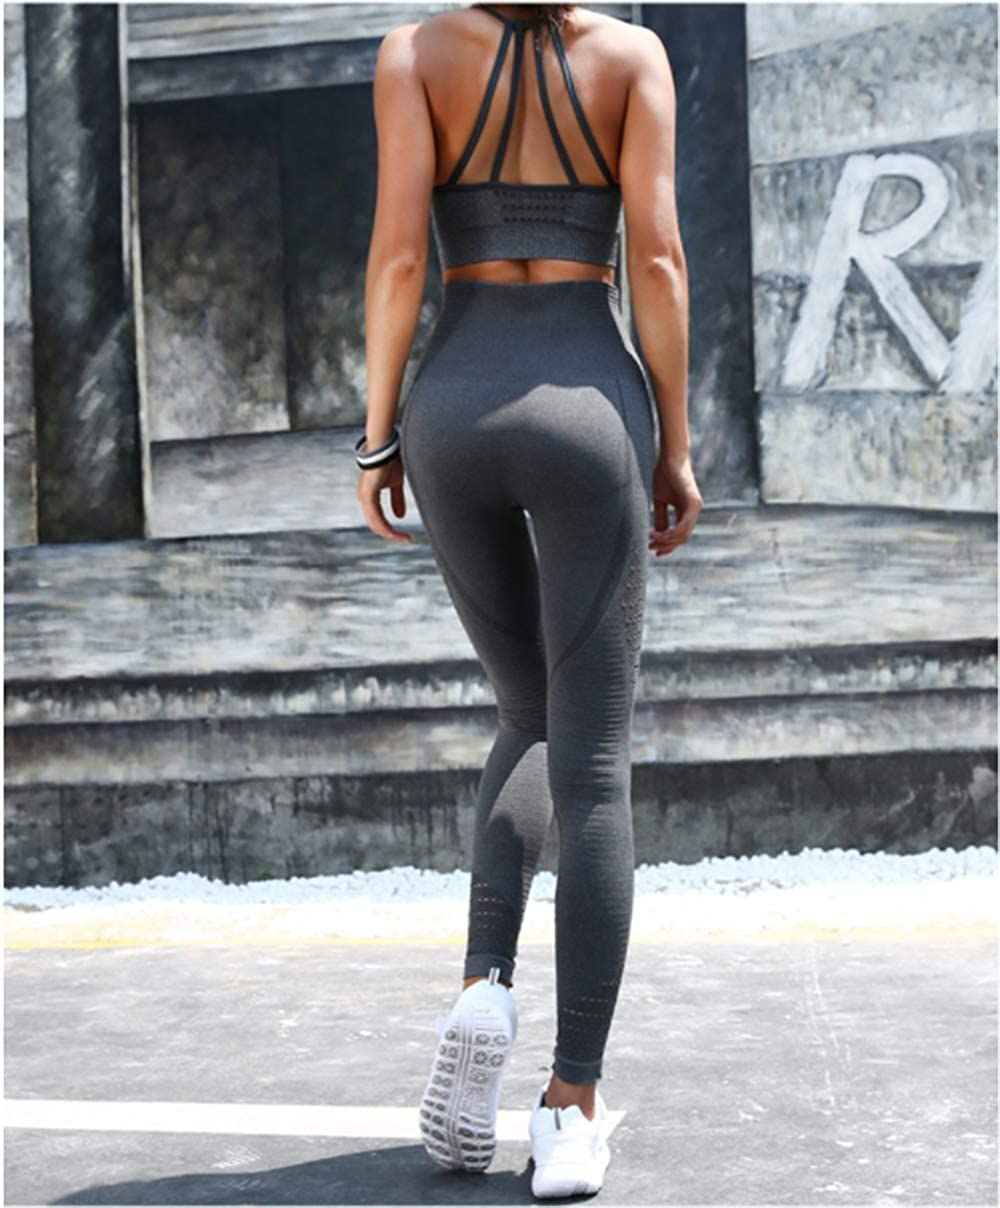 High Waist Tummy Control Sports Leggings Running Tights Training Pants Casual Trousers gray5, S BBY Women Yoga Leggings